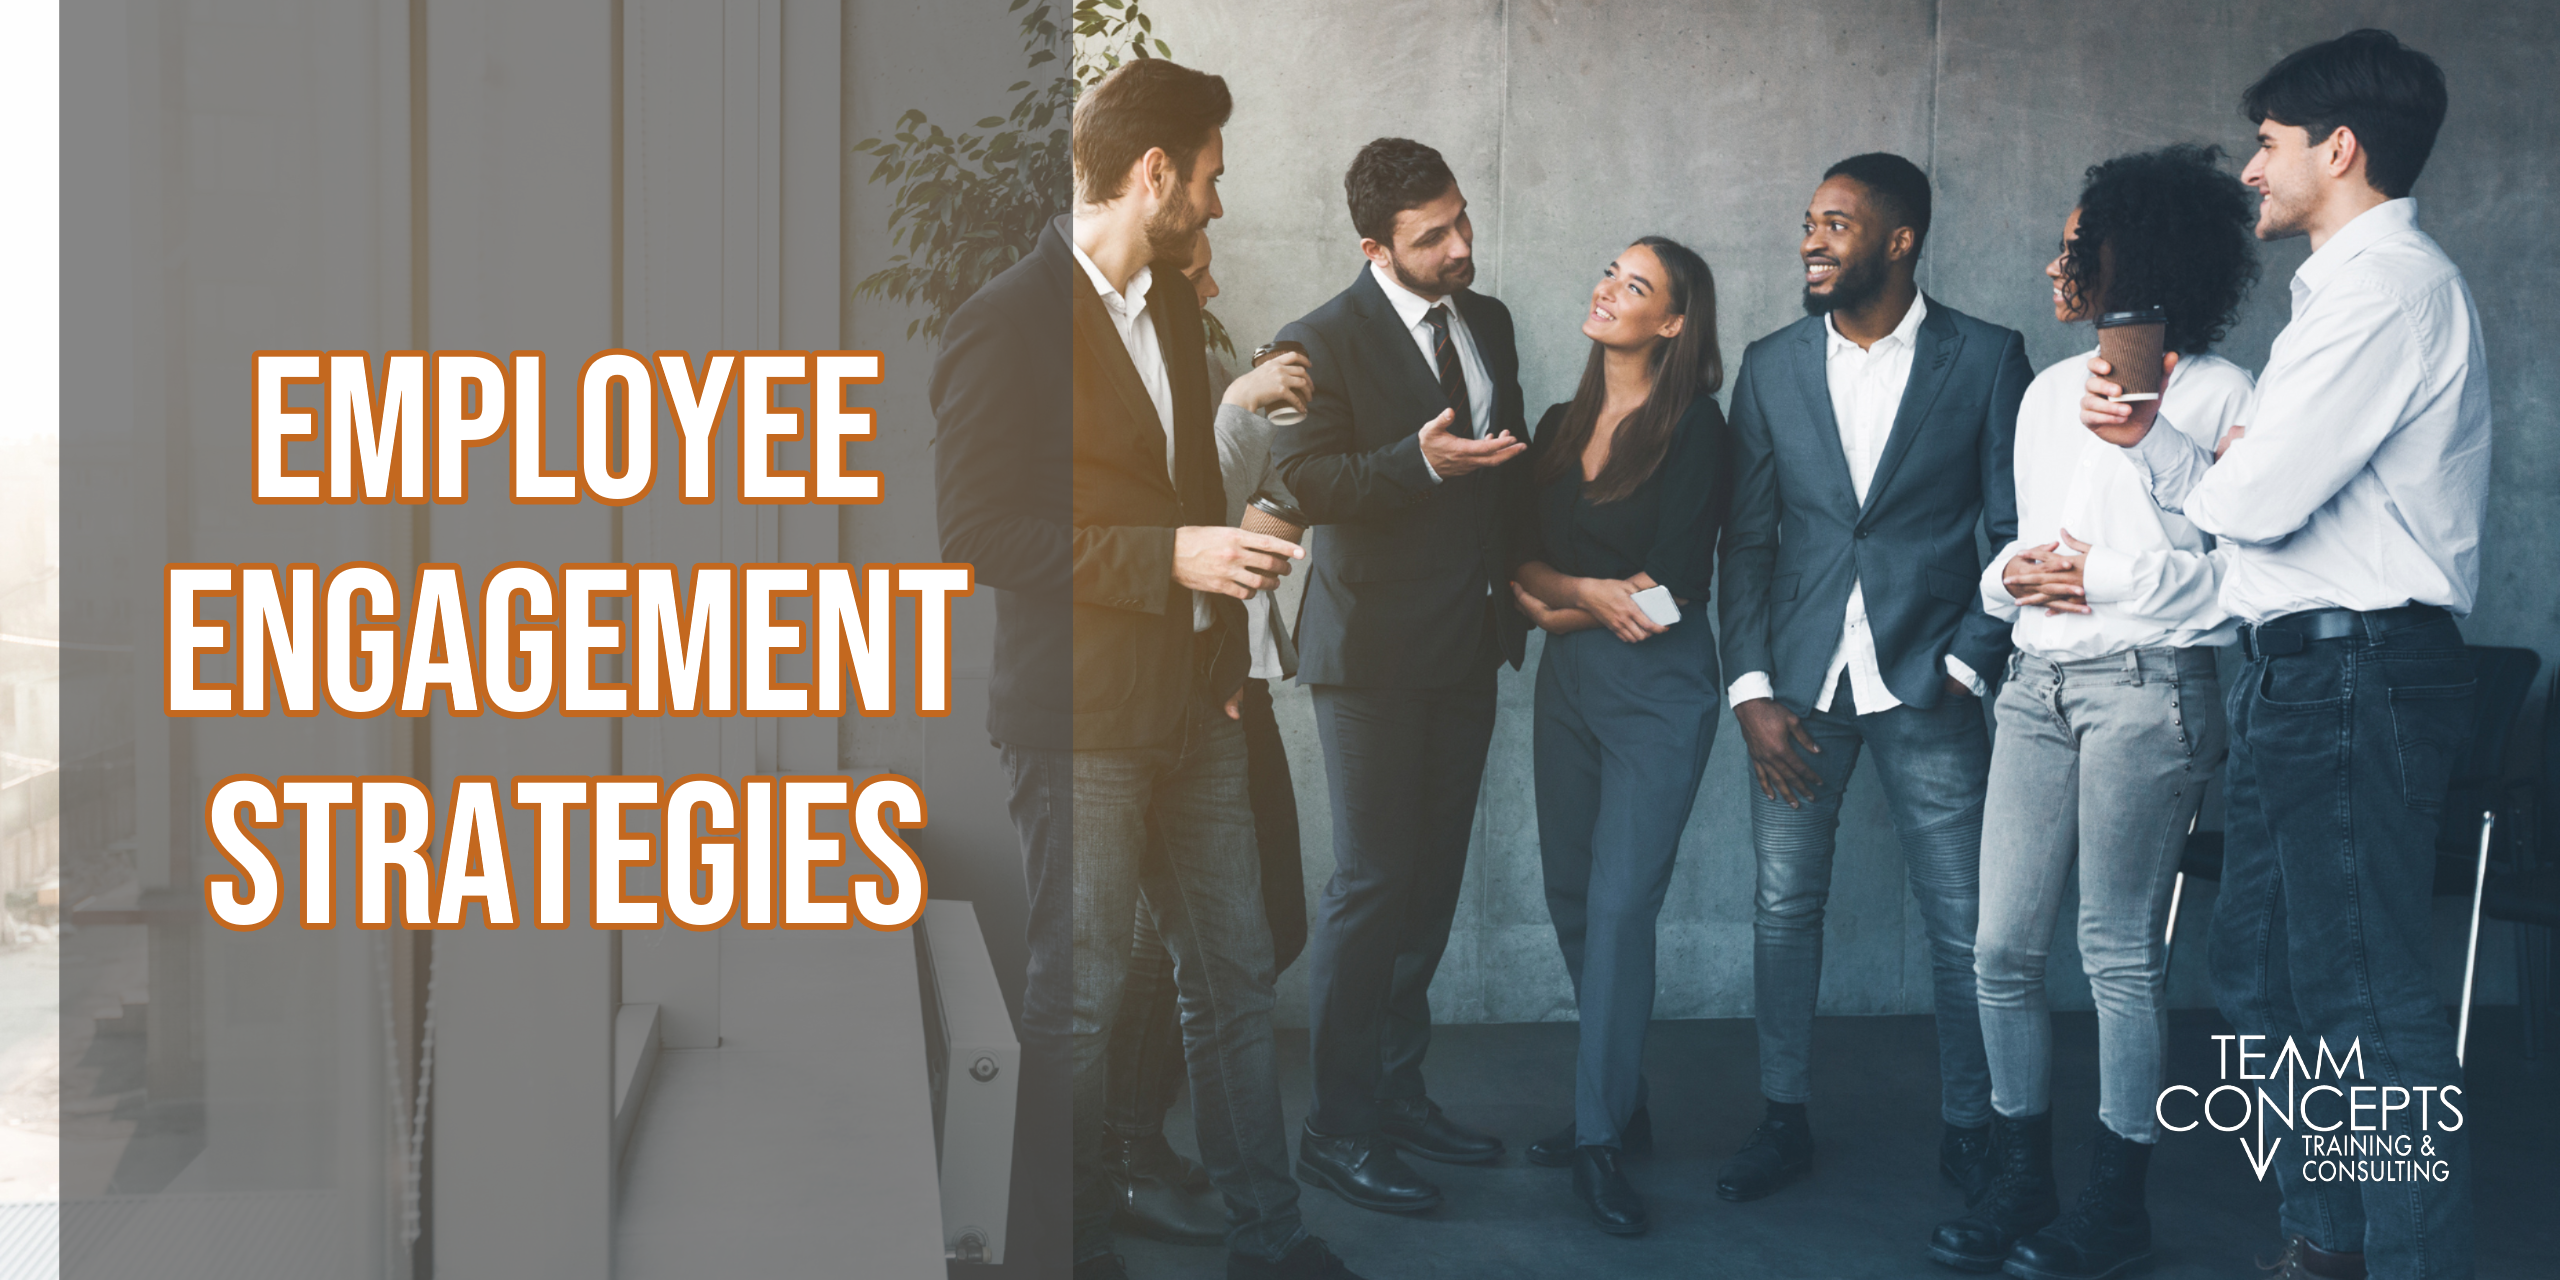 Employee Engagement Strategies